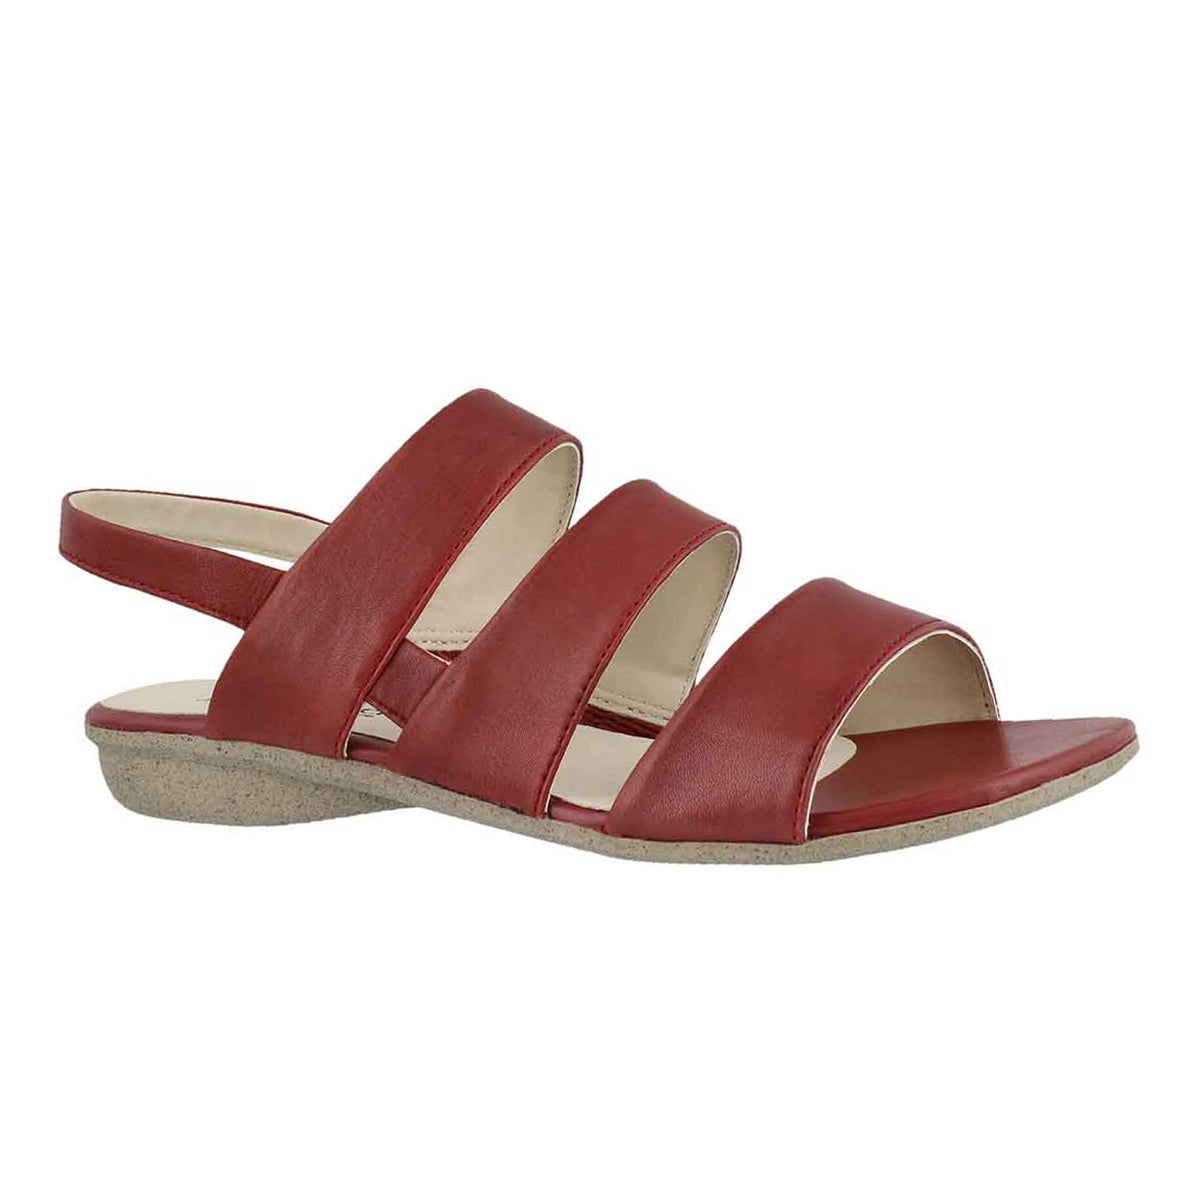 Lds Fabia 11 carmin dress sandal